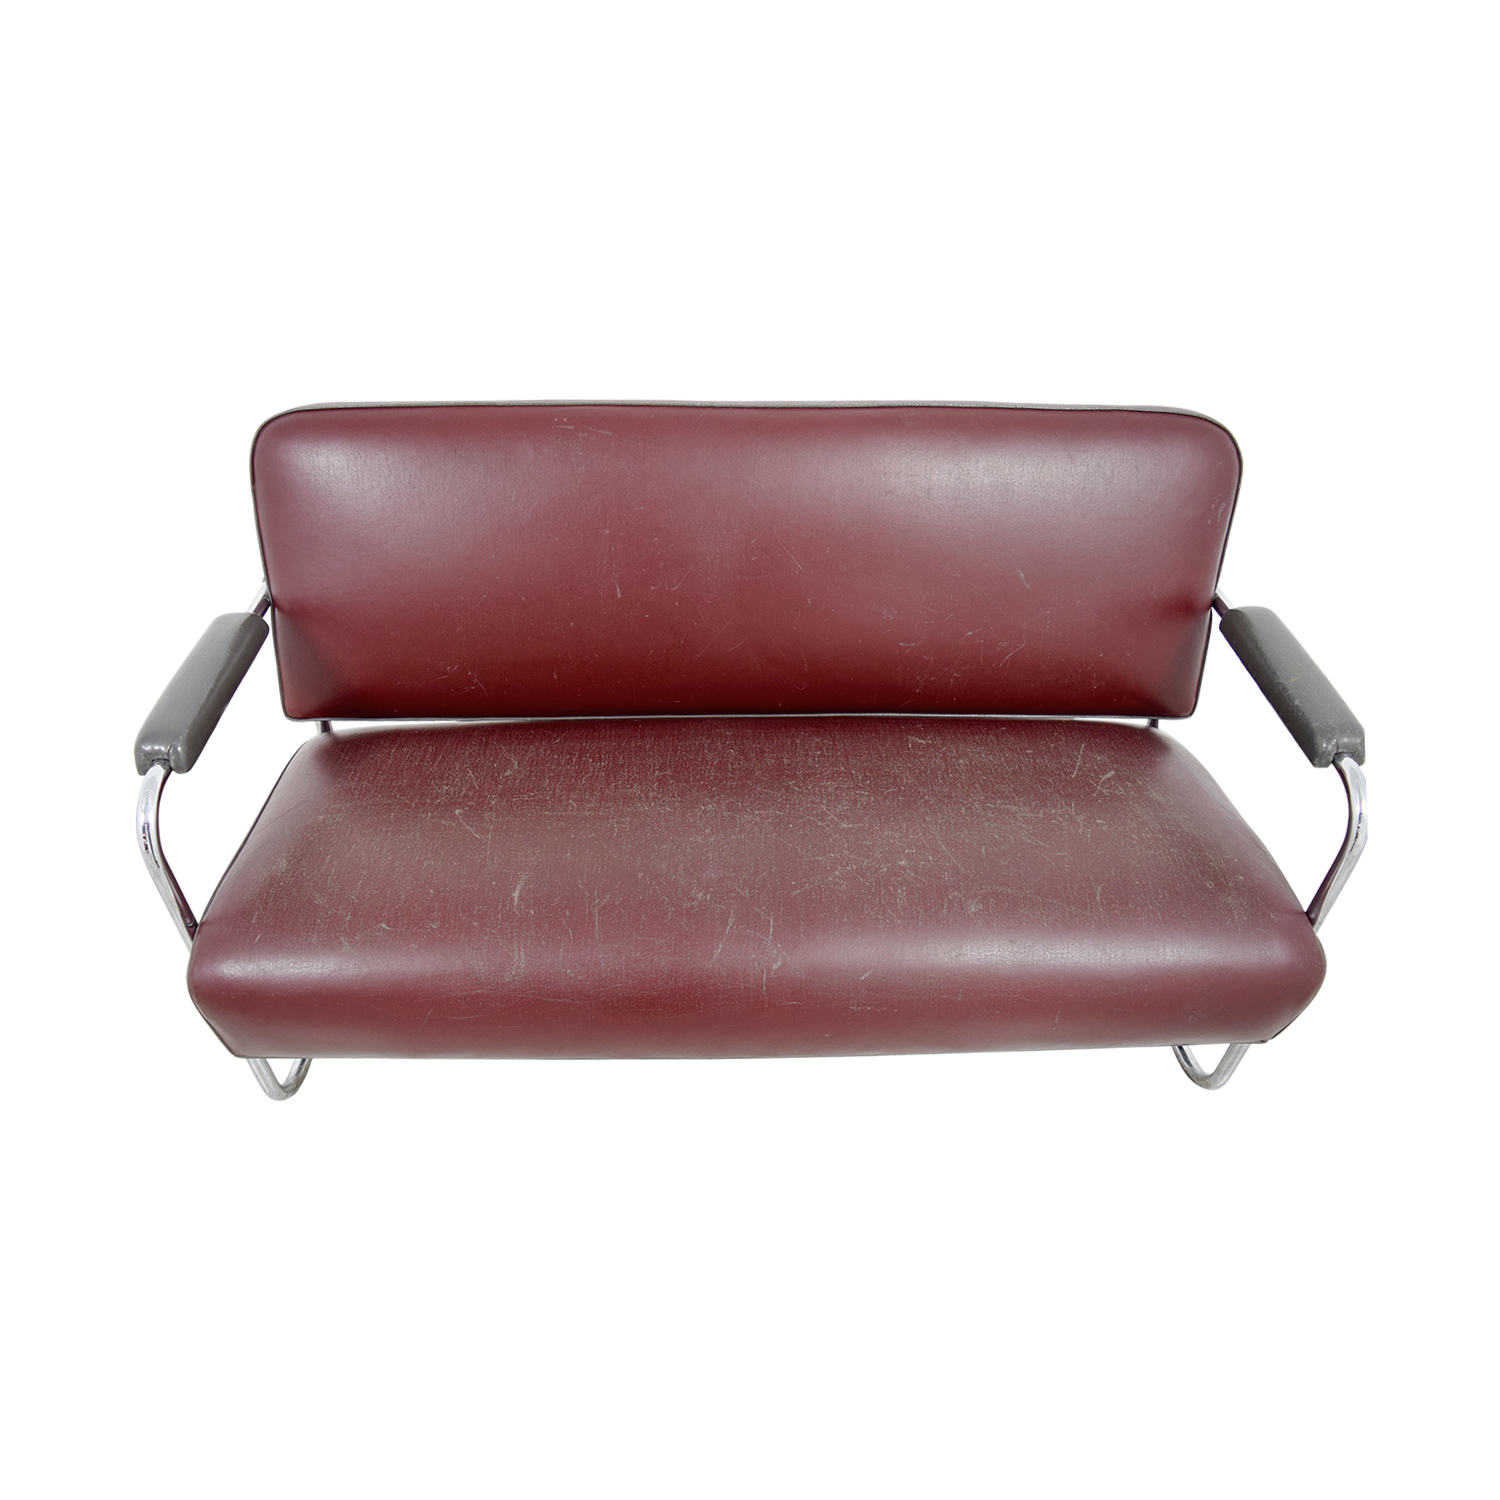 New leather sofas for sale marmsweb marmsweb for Leather sofas for sale